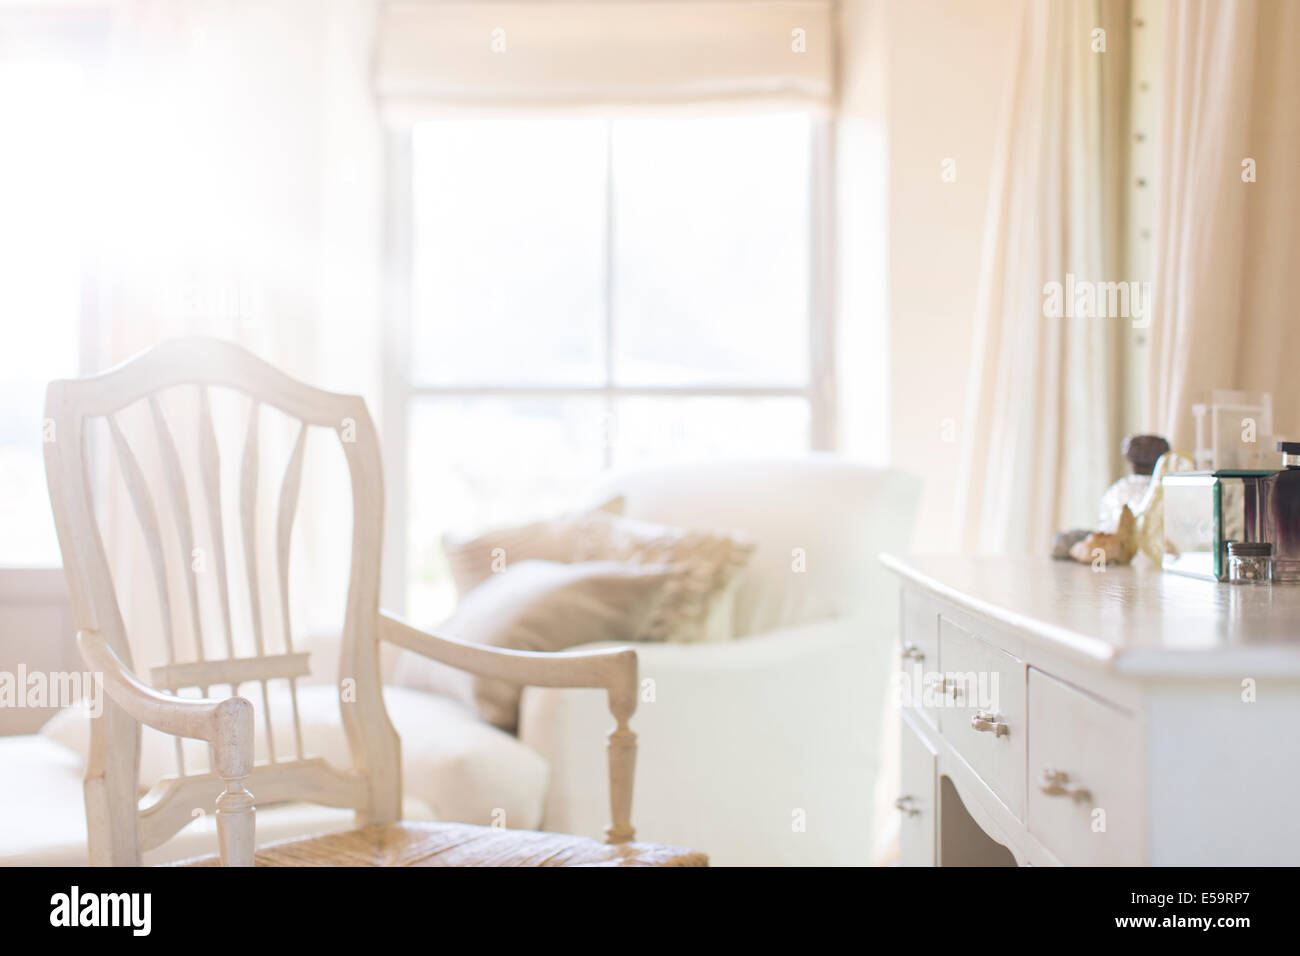 Armchair at vanity of rustic house - Stock Image